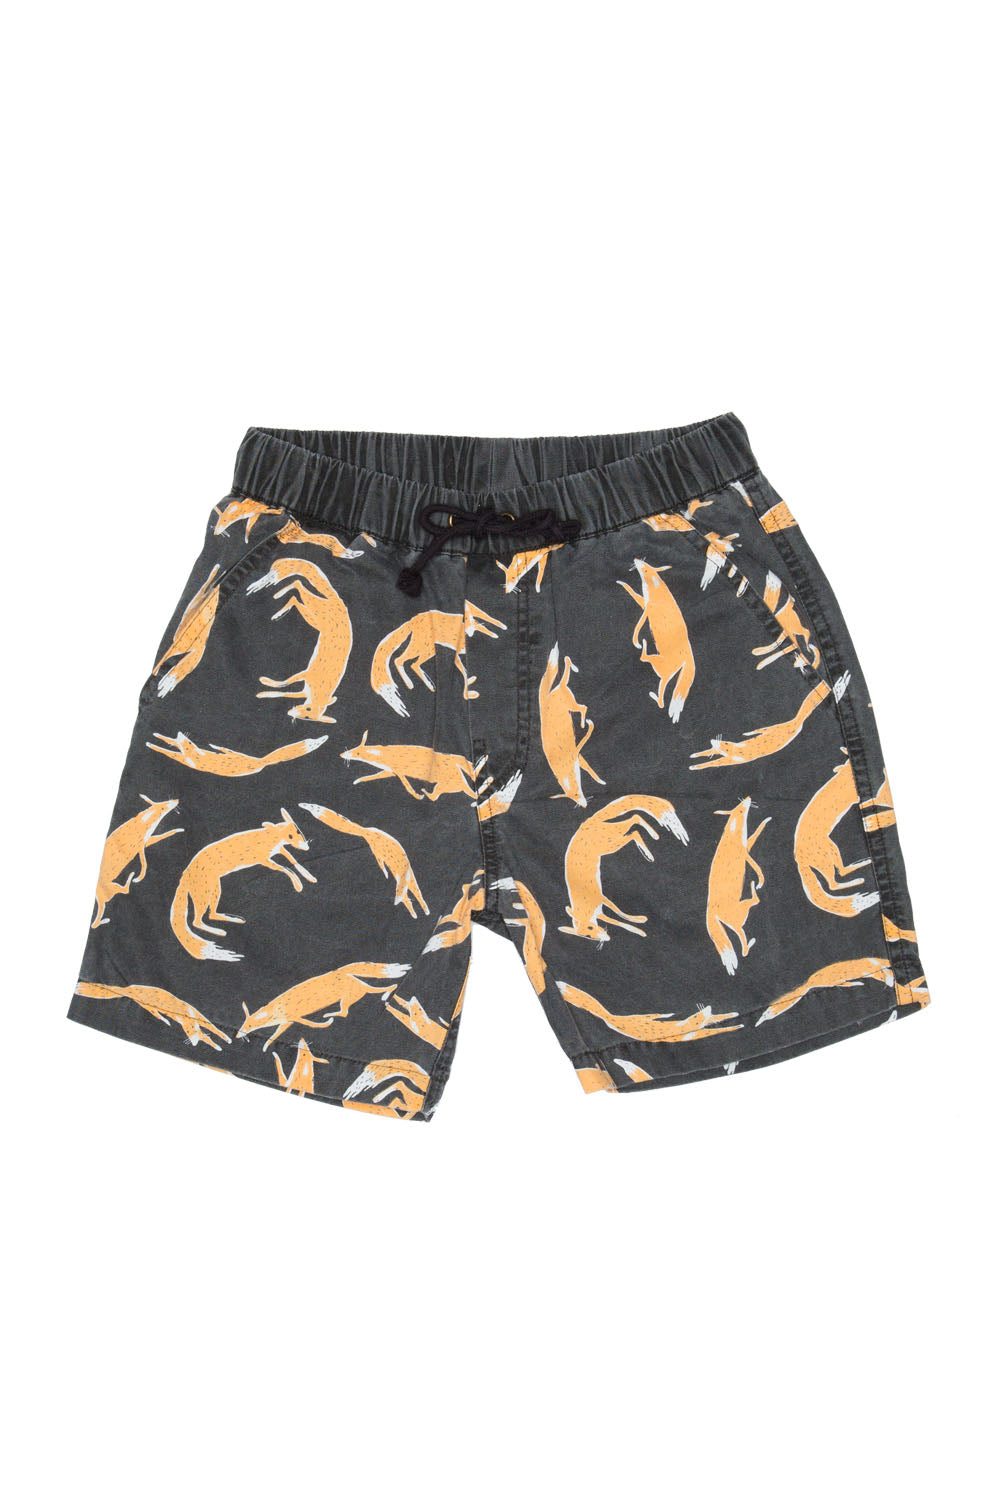 FOX BOAT SHORT CHARCOAL - Zuttion